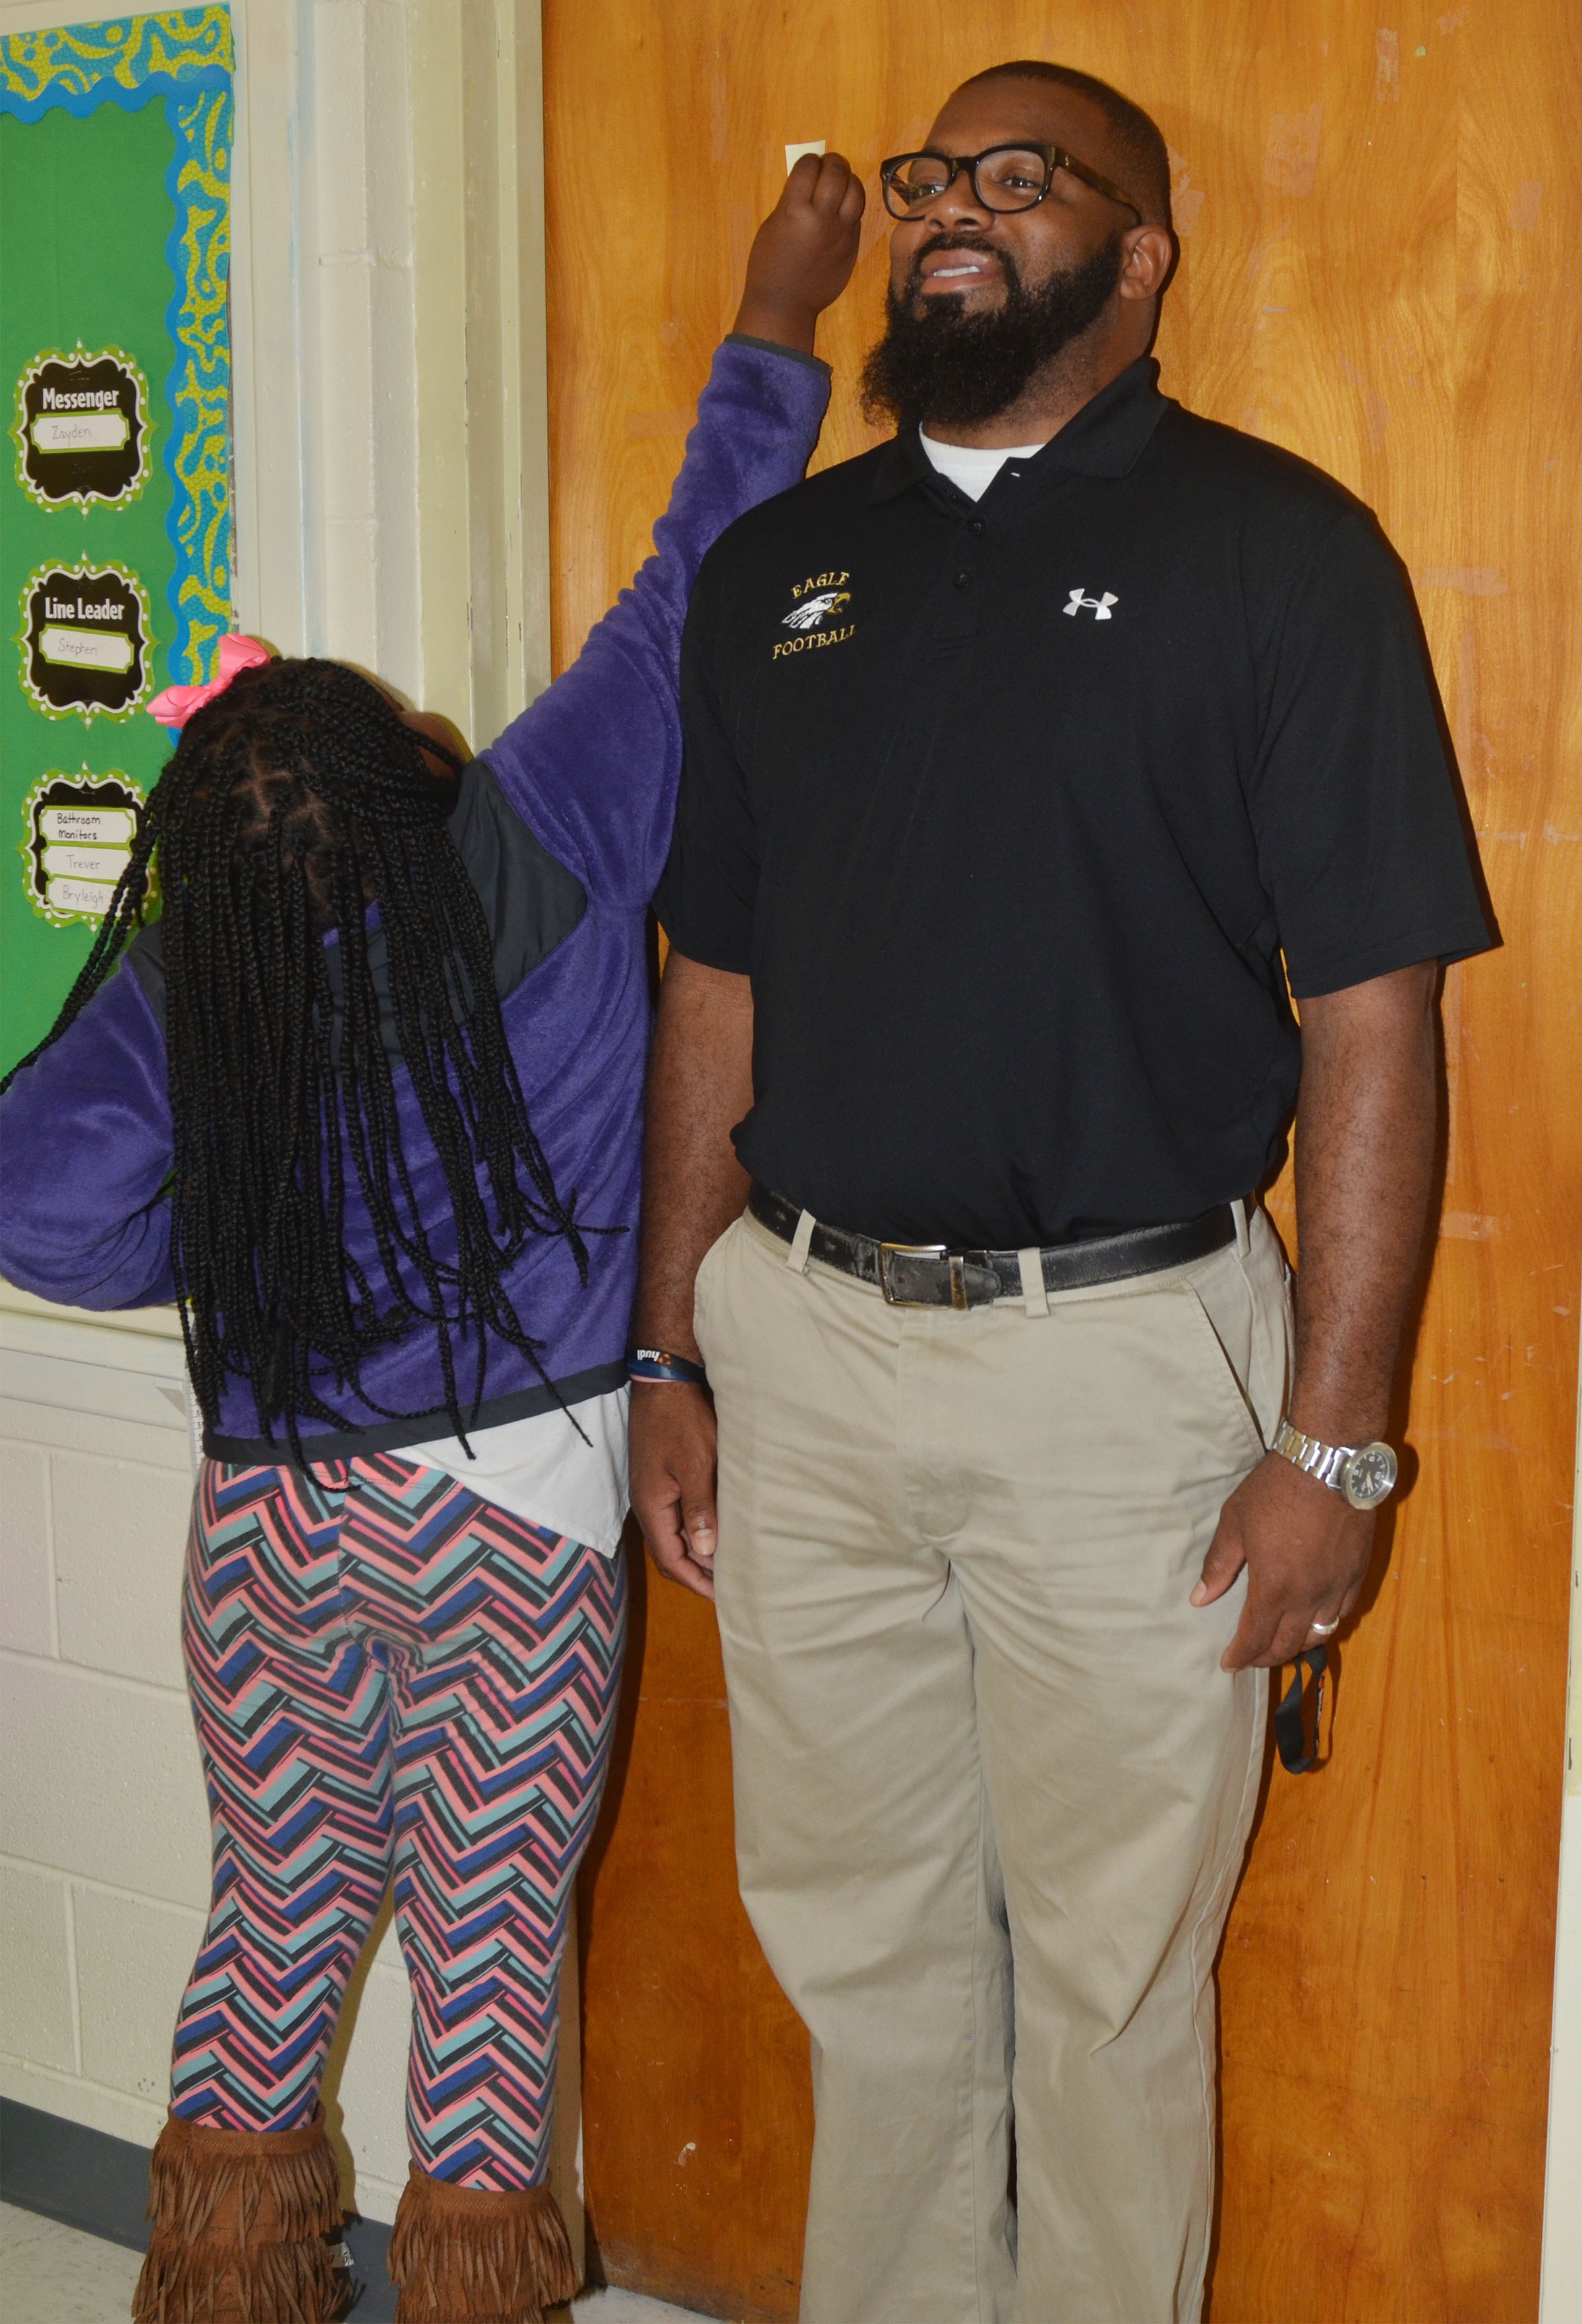 CES second-grader Ajada Smith measures Will Griffin, an exceptional child educator at CES, to see his height.